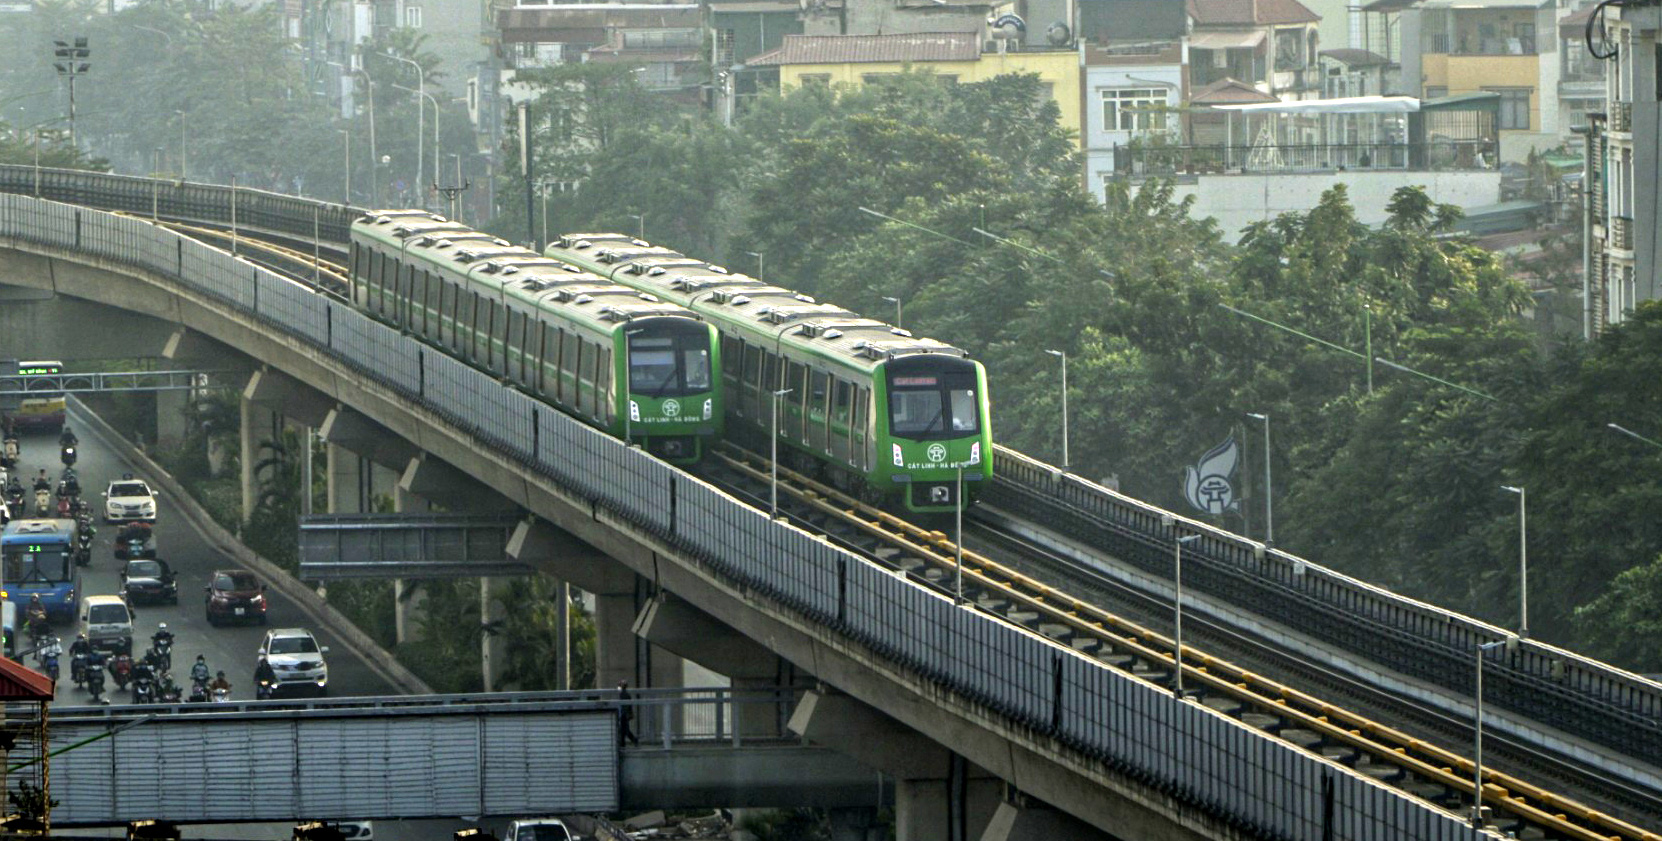 Supervision, consultancy costs jump $7.8 million due to slow construction of Hanoi metro line